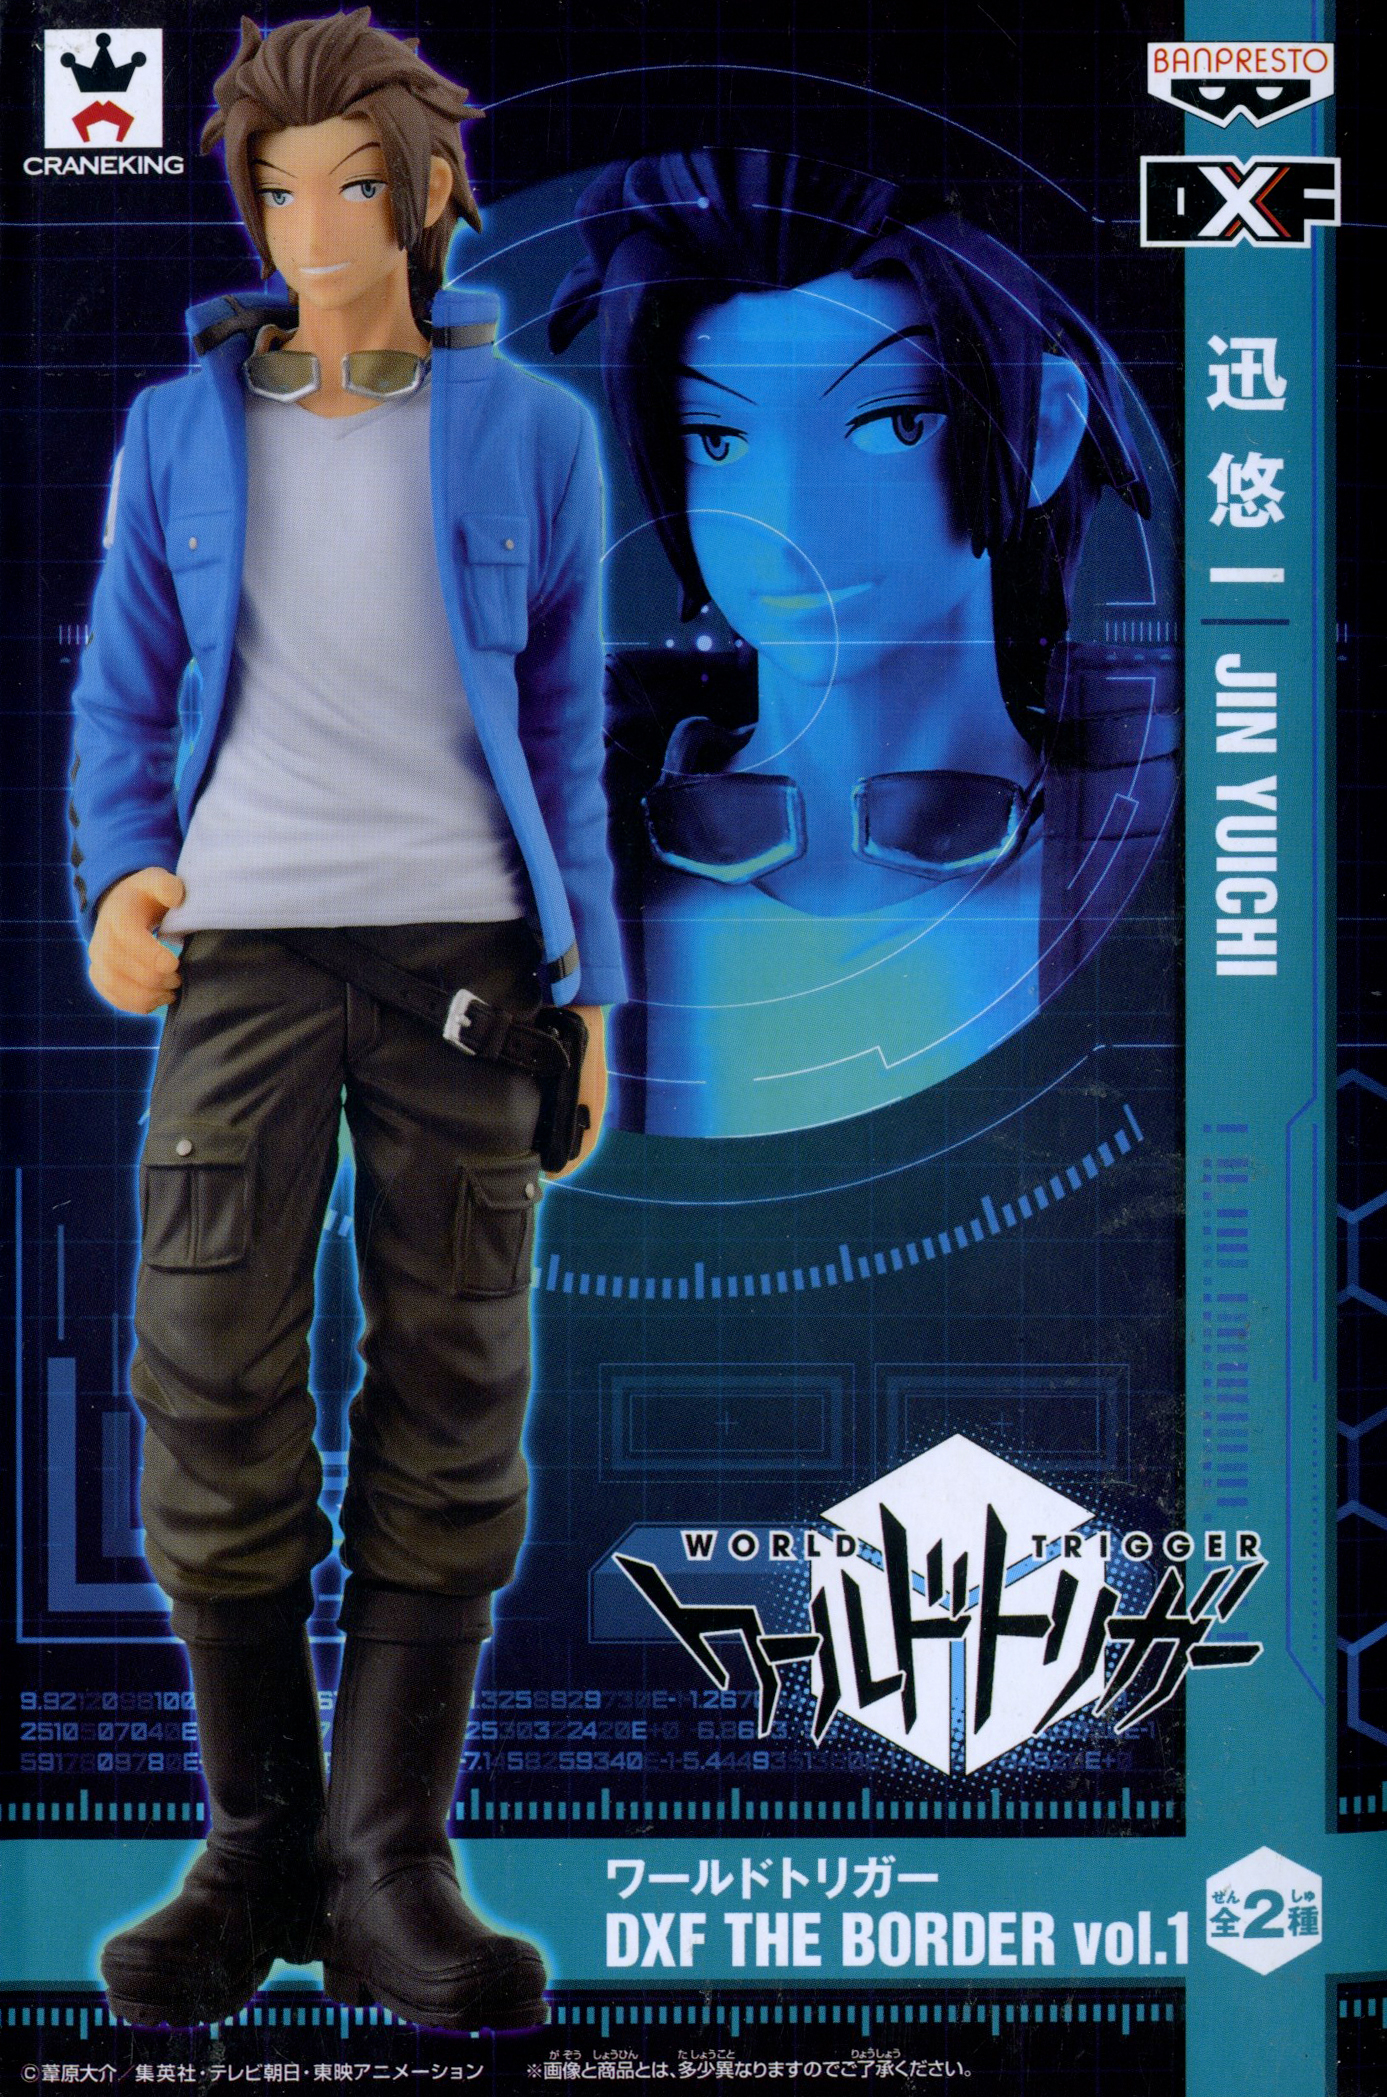 Jin Yuichi, DXF The Border vol. 1, World Trigger, Banpresto